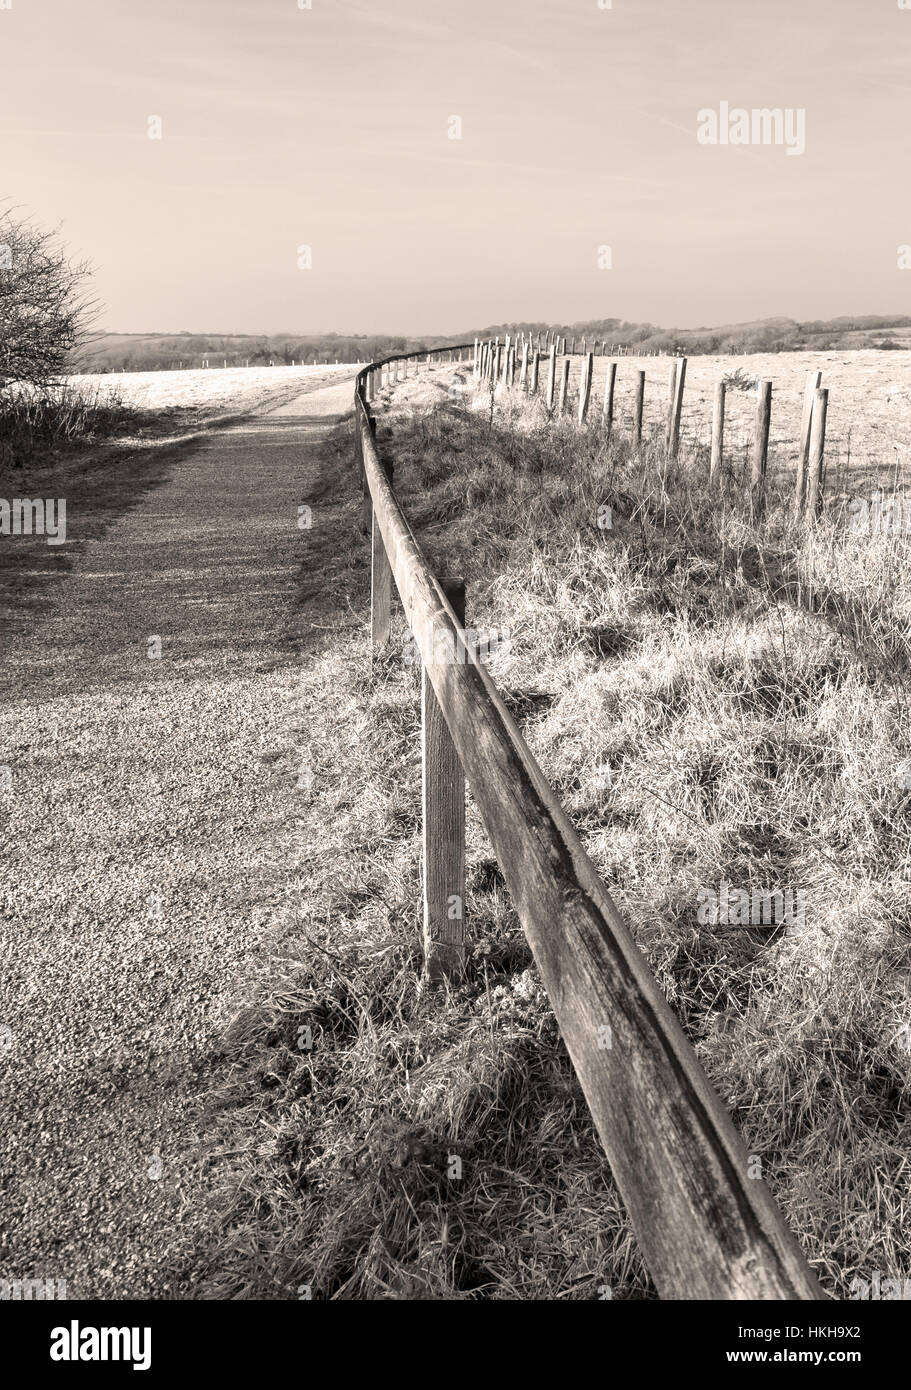 speia image of path in countryside leading into the distance - Stock Image